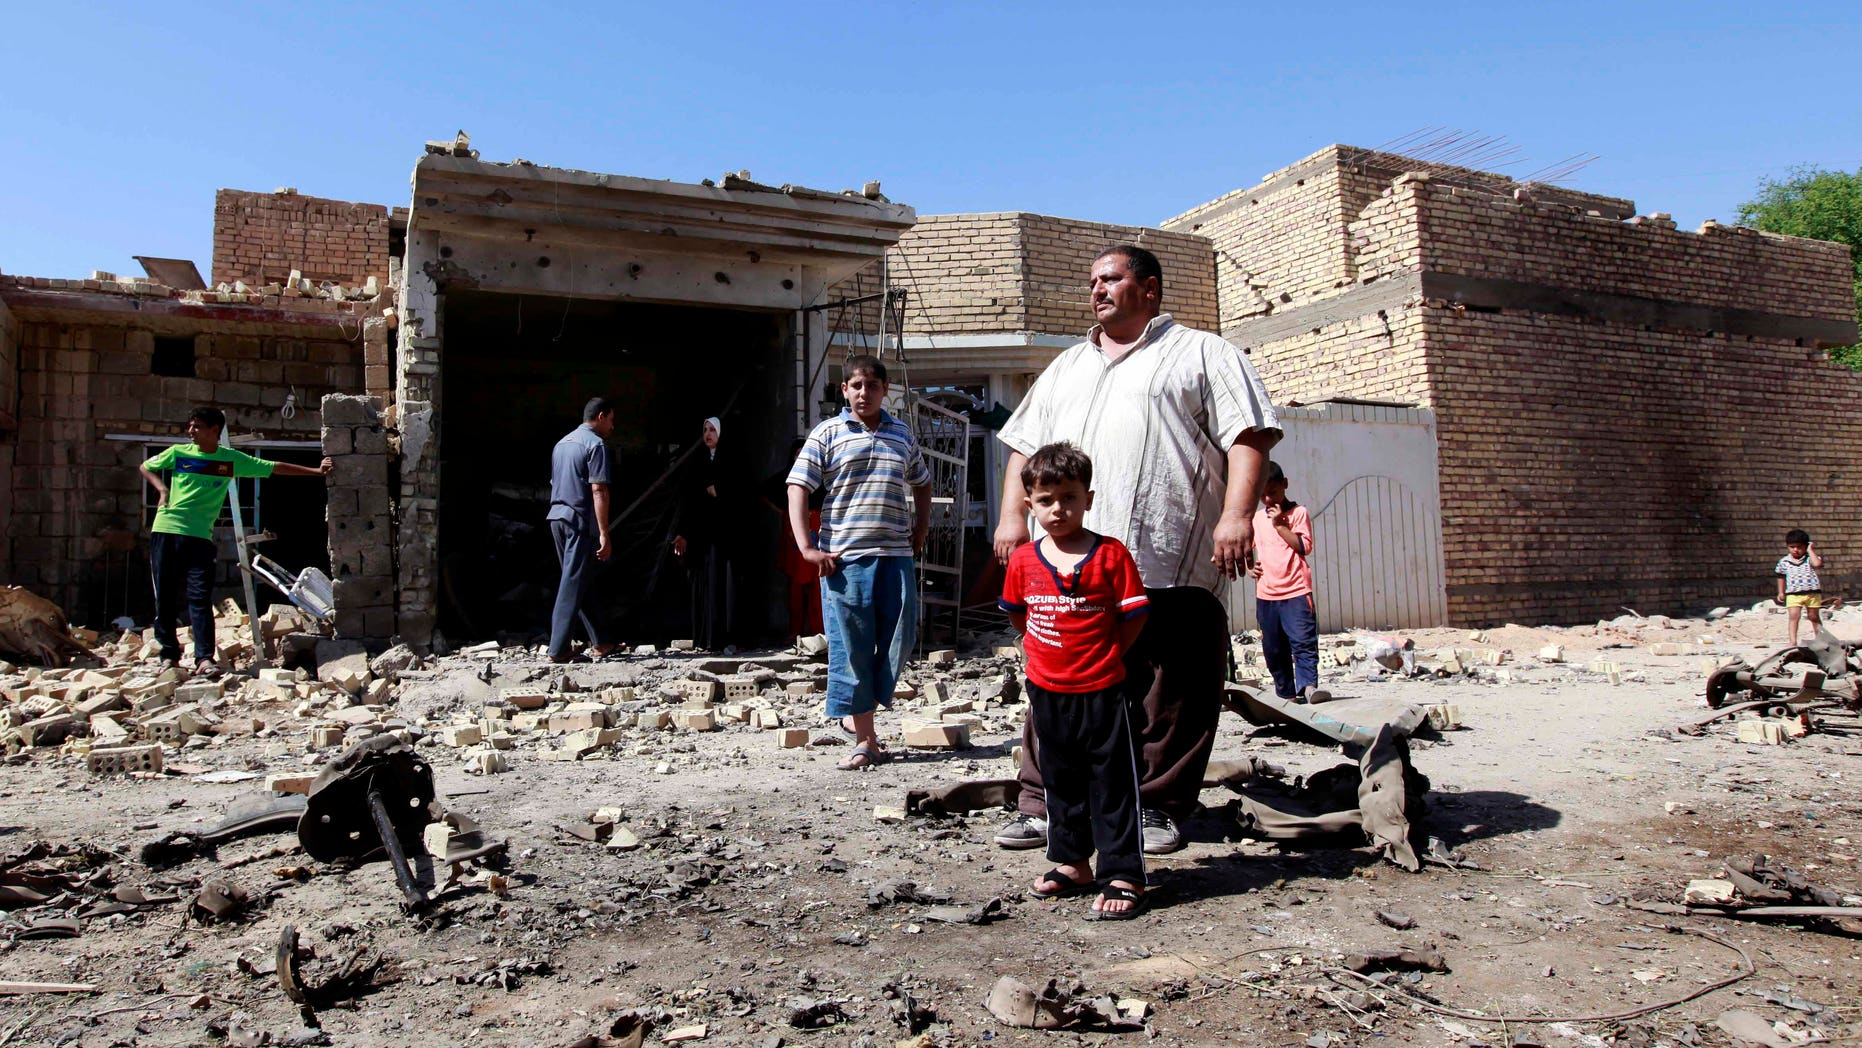 Sept. 30, 2012 - Iraqis stand in rubble at the scene of a car bomb attack in the town of Taji, about 12 miles north of Baghdad, Iraq.